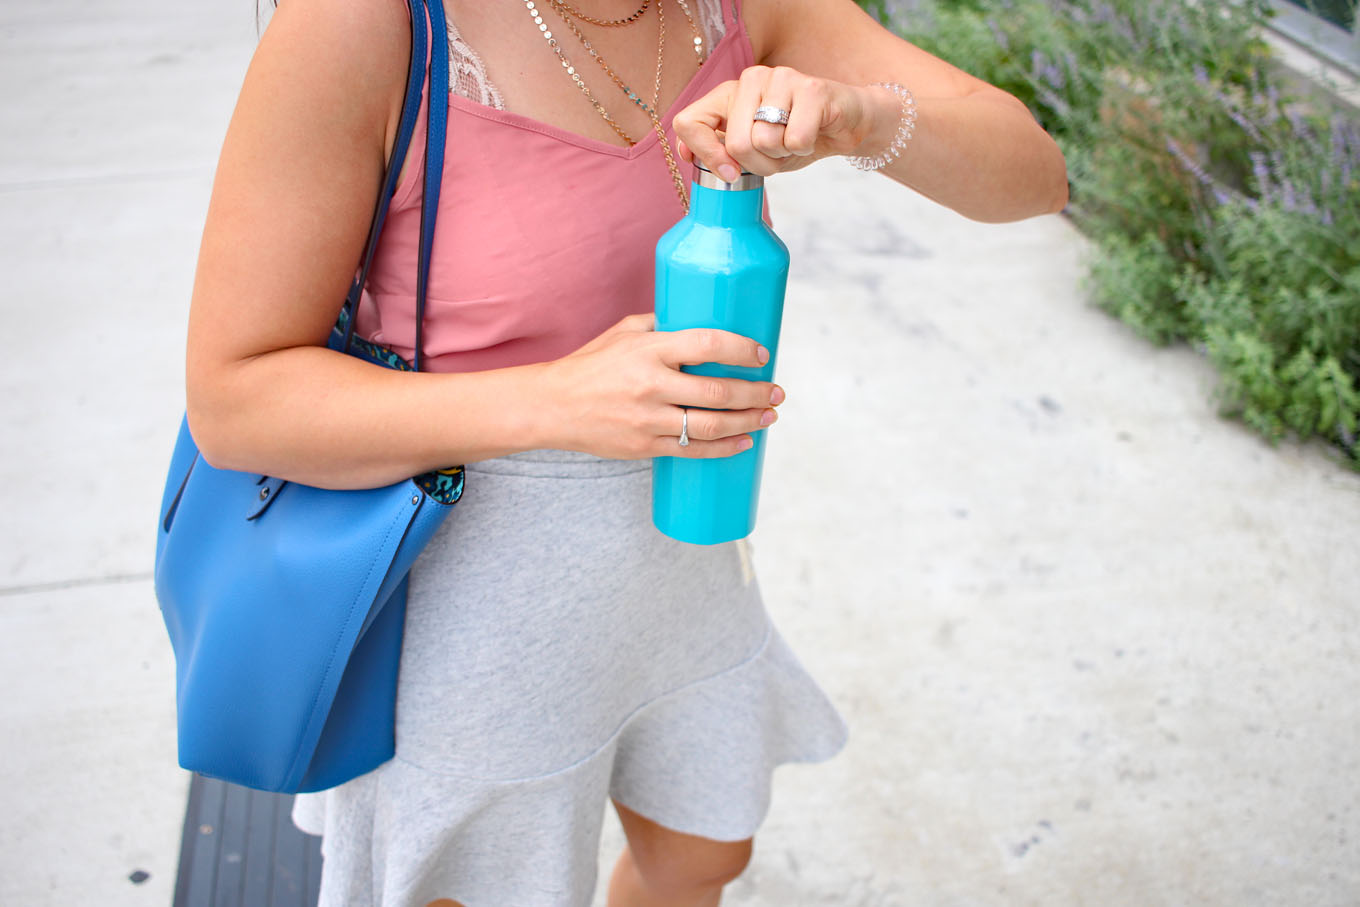 Lifestyle blogger Roxanne of Glass of Glam's tips for increasing your afternoon productivity with MiO - MiO Energy: How to Squeeze More Time Out Of Your Afternoon by popular DC lifestyle blogger Glass of Glam